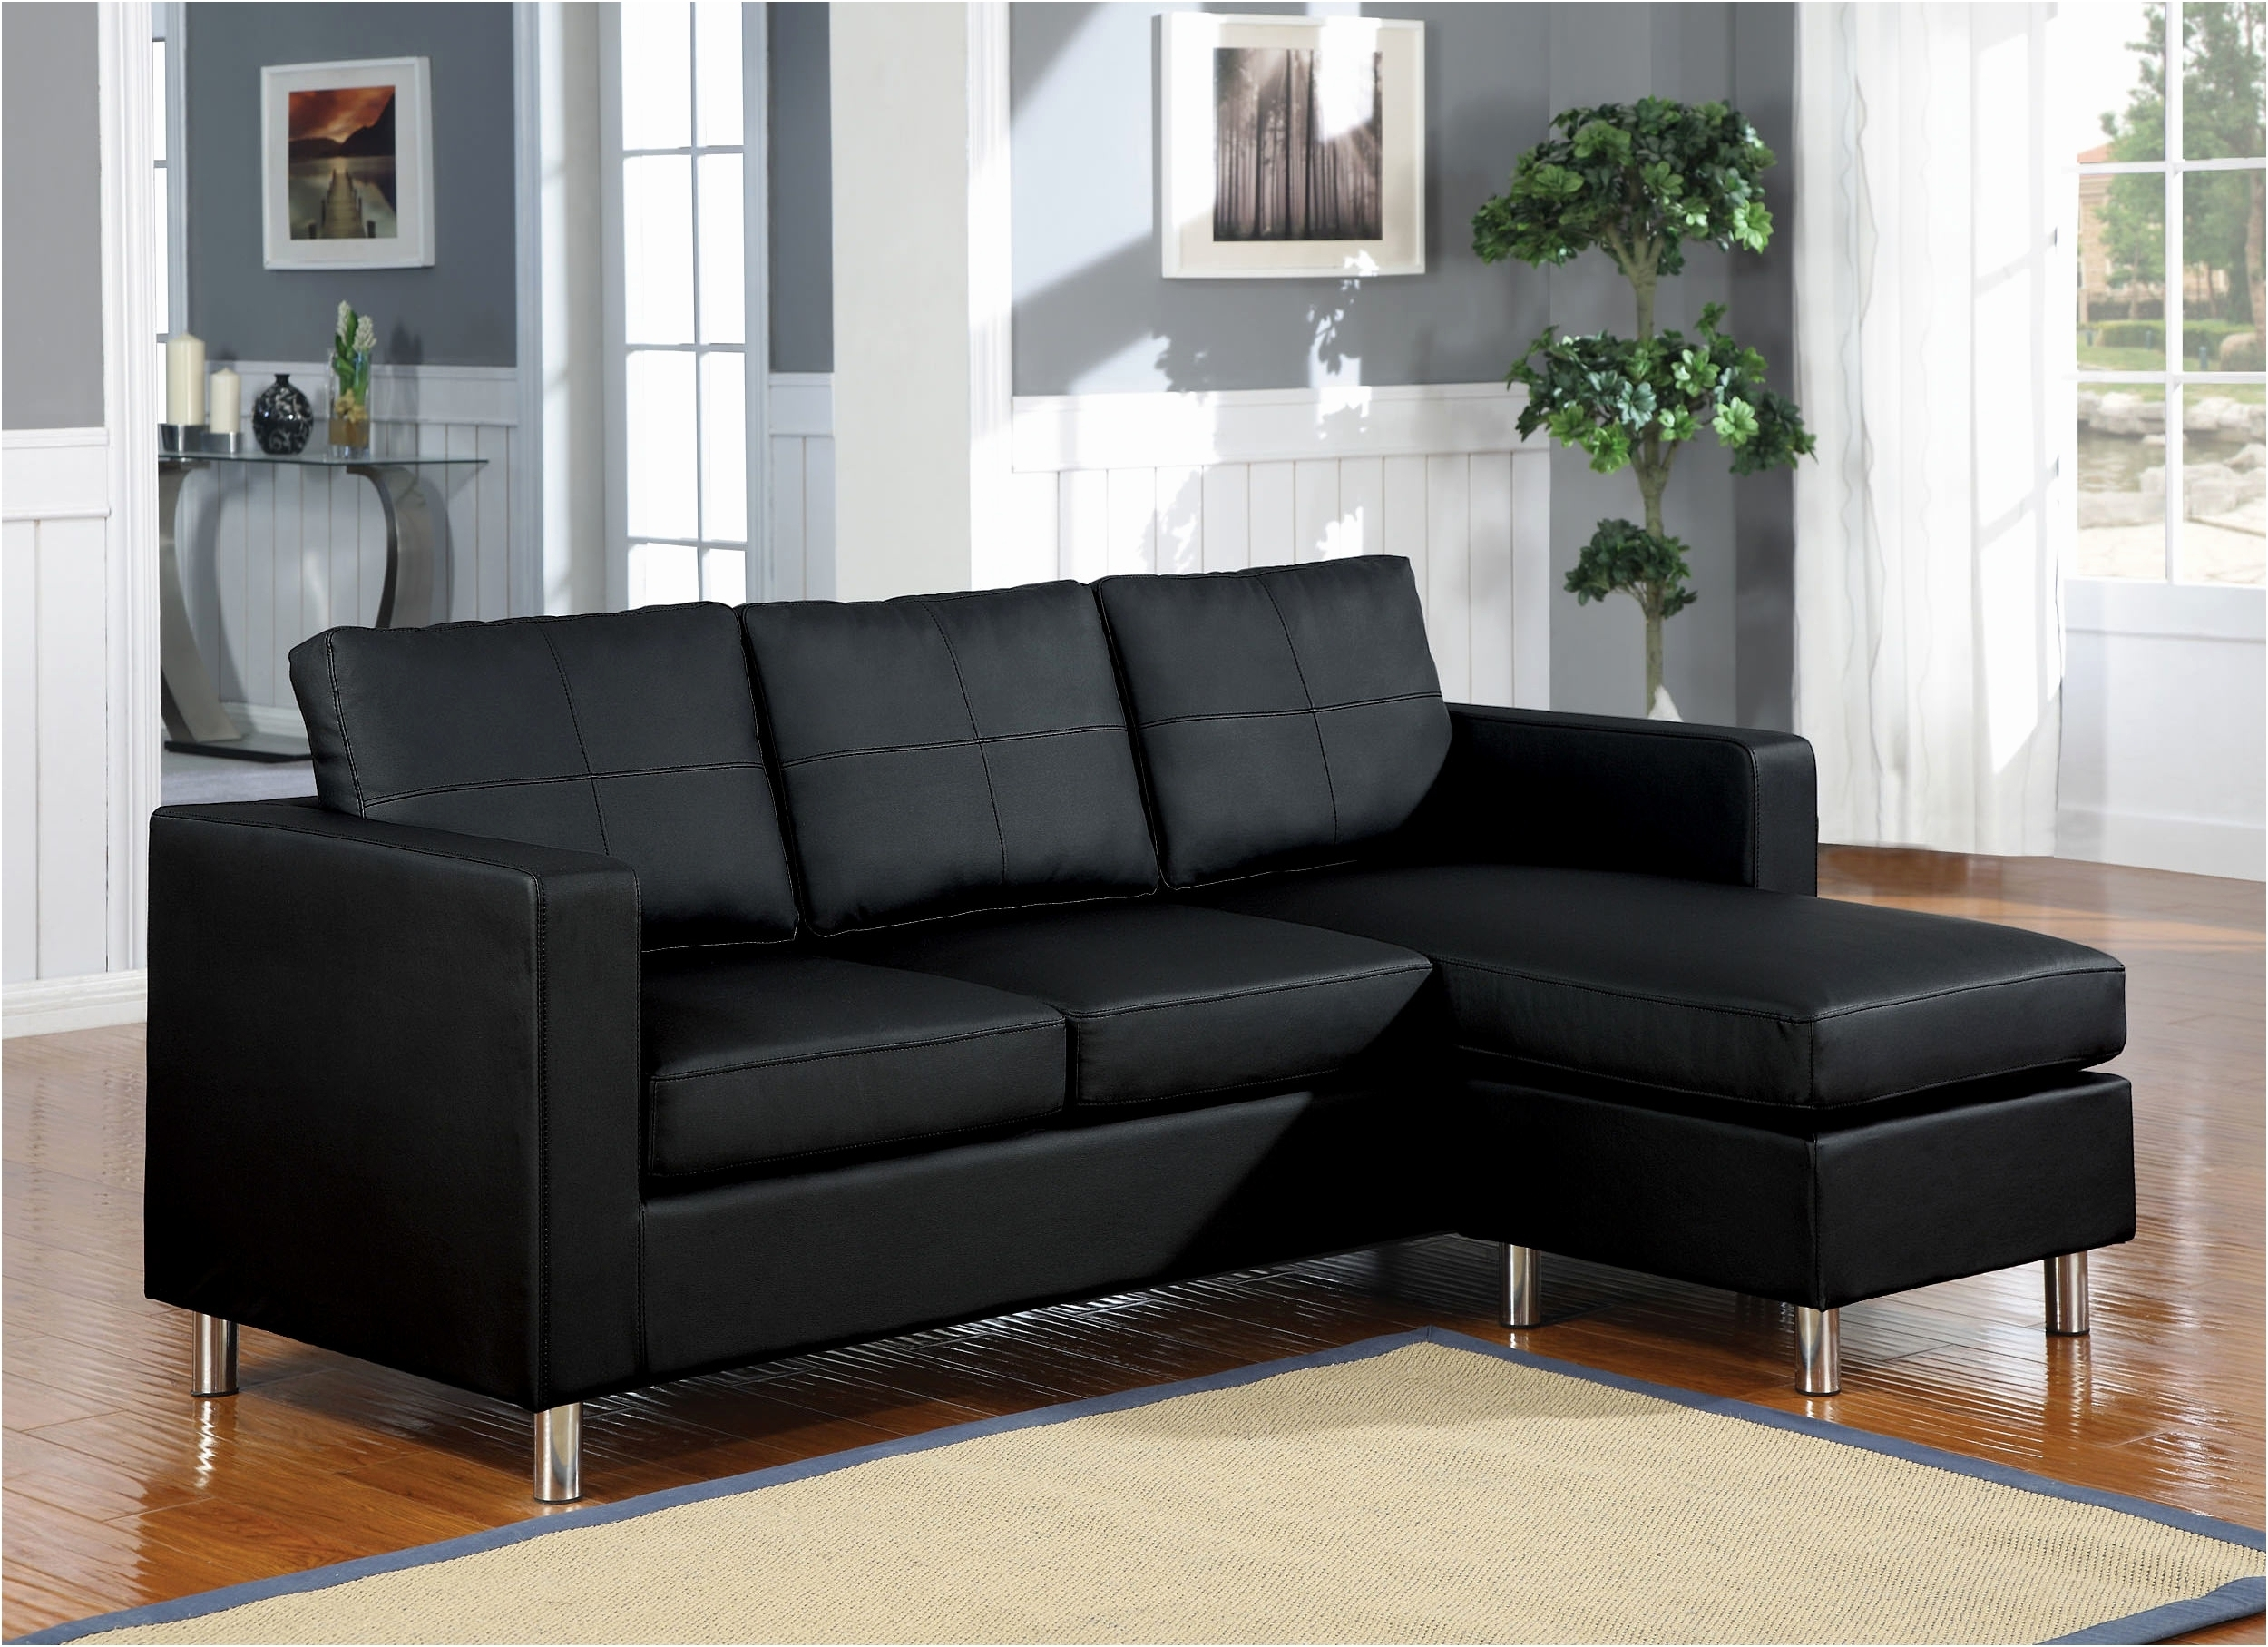 Most Recent Small Leather Sectional Sofa Luxury Furniture Sofa Perfect Small With Small Sectional Sofas For Small Spaces (View 18 of 20)